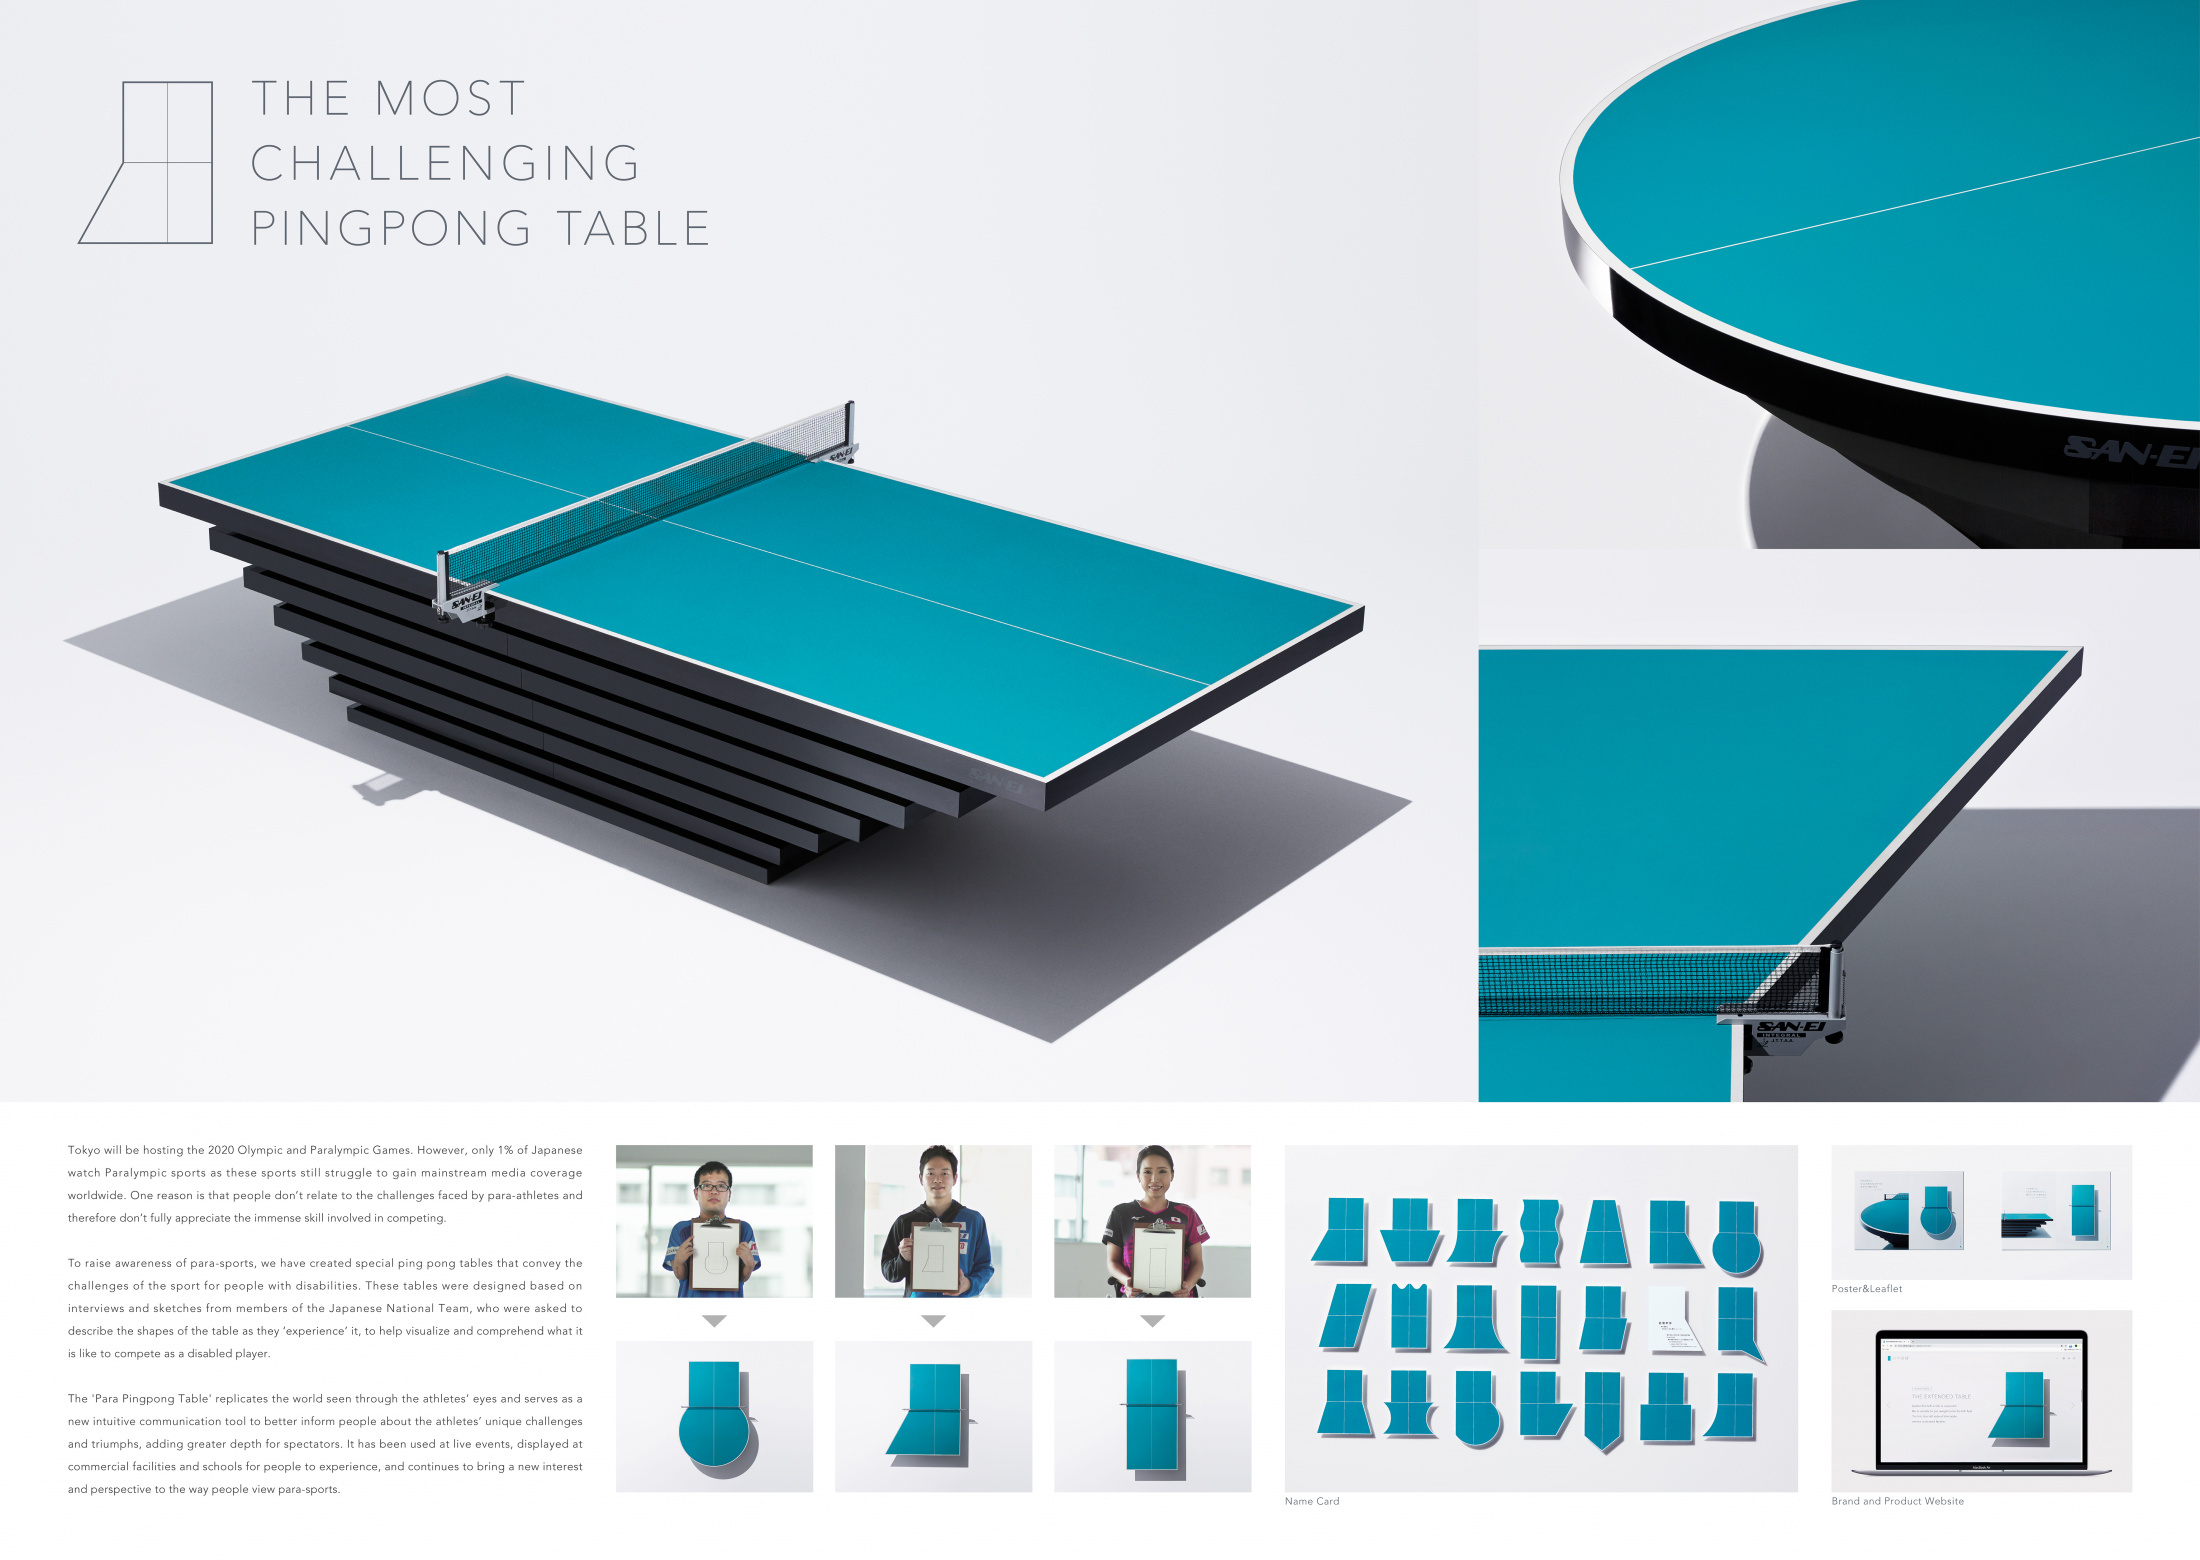 Thumbnail for THE MOST CHALLENGING PINGPONG TABLE